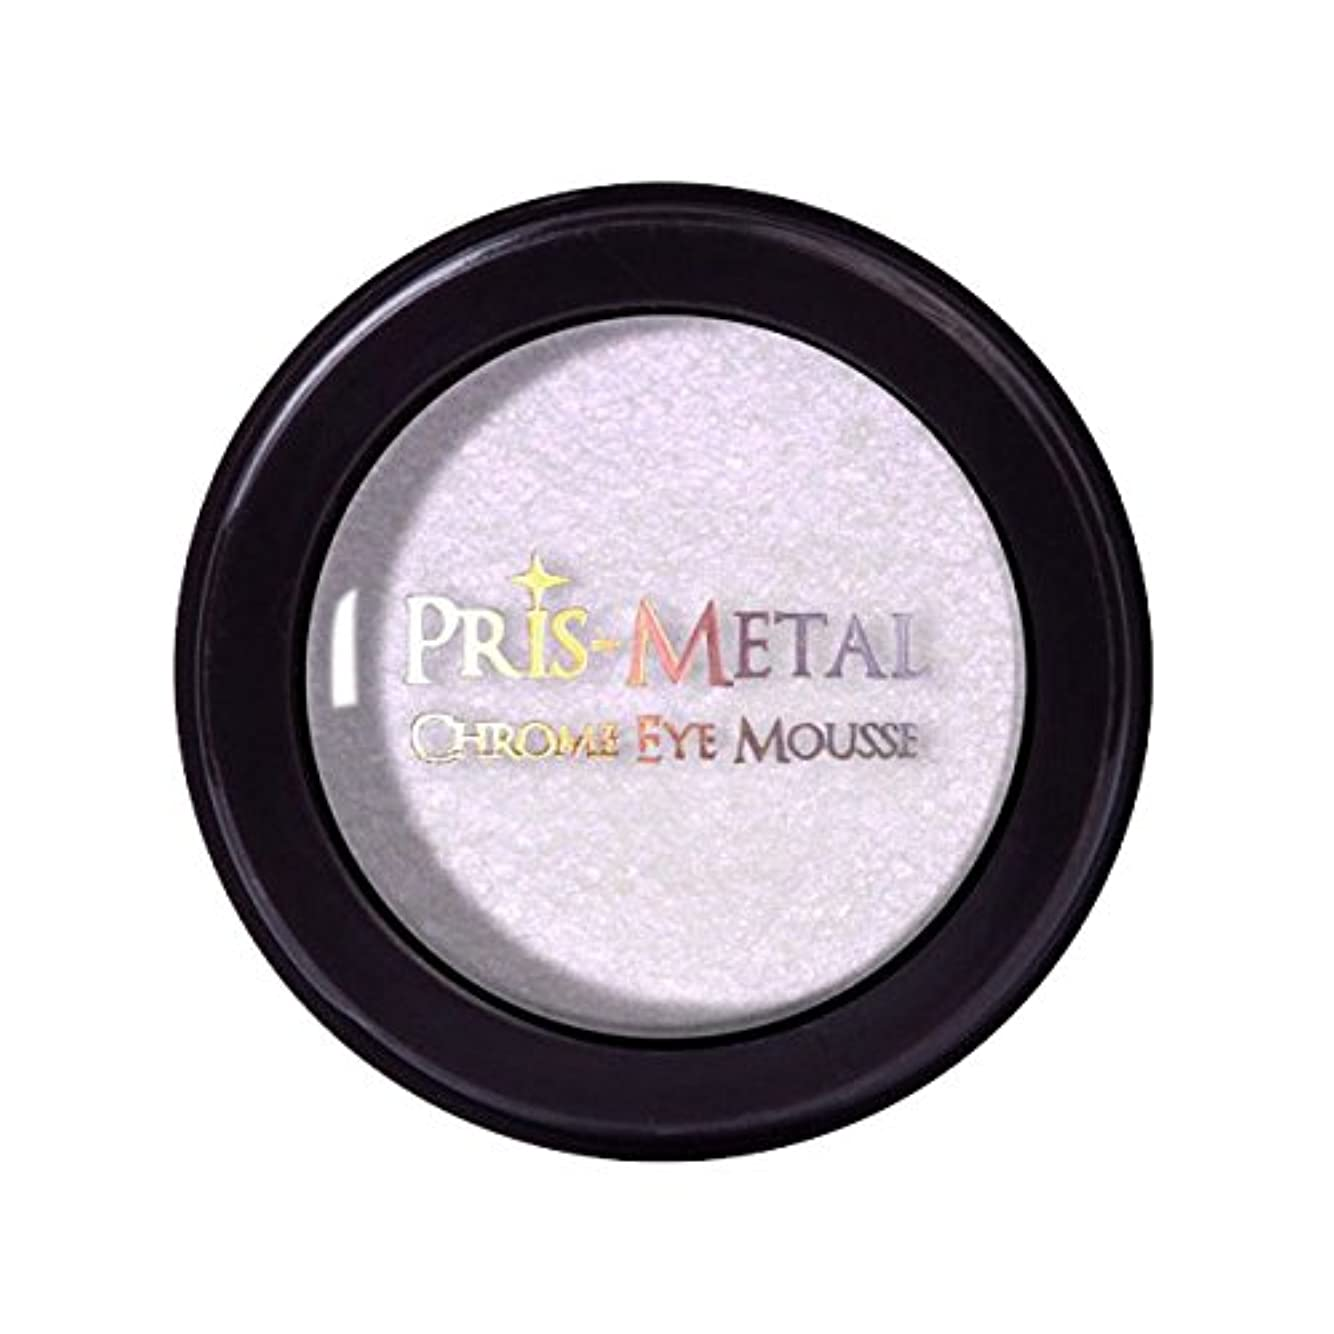 抱擁トライアスリート悪性腫瘍(6 Pack) J. CAT BEAUTY Pris-Metal Chrome Eye Mousse - Pinky Promise (並行輸入品)